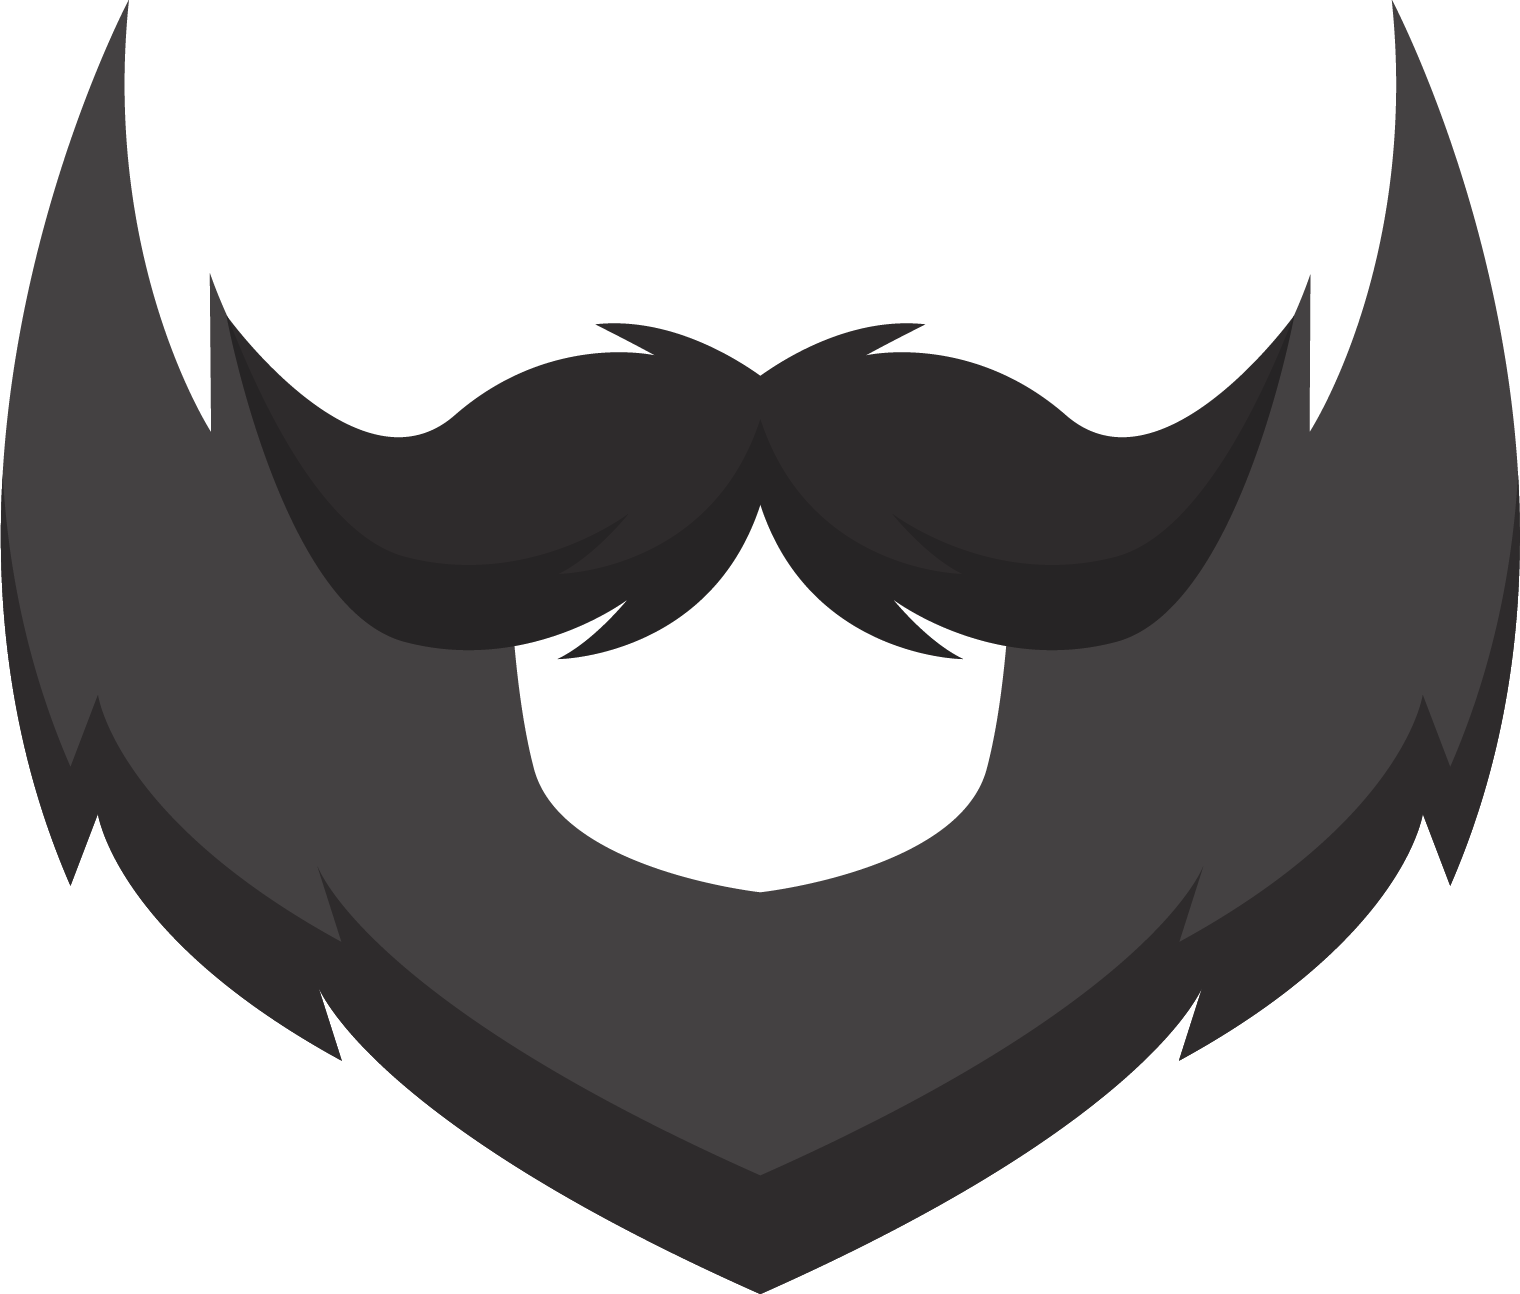 beard silhouette clip art at getdrawings com free for personal use rh getdrawings com